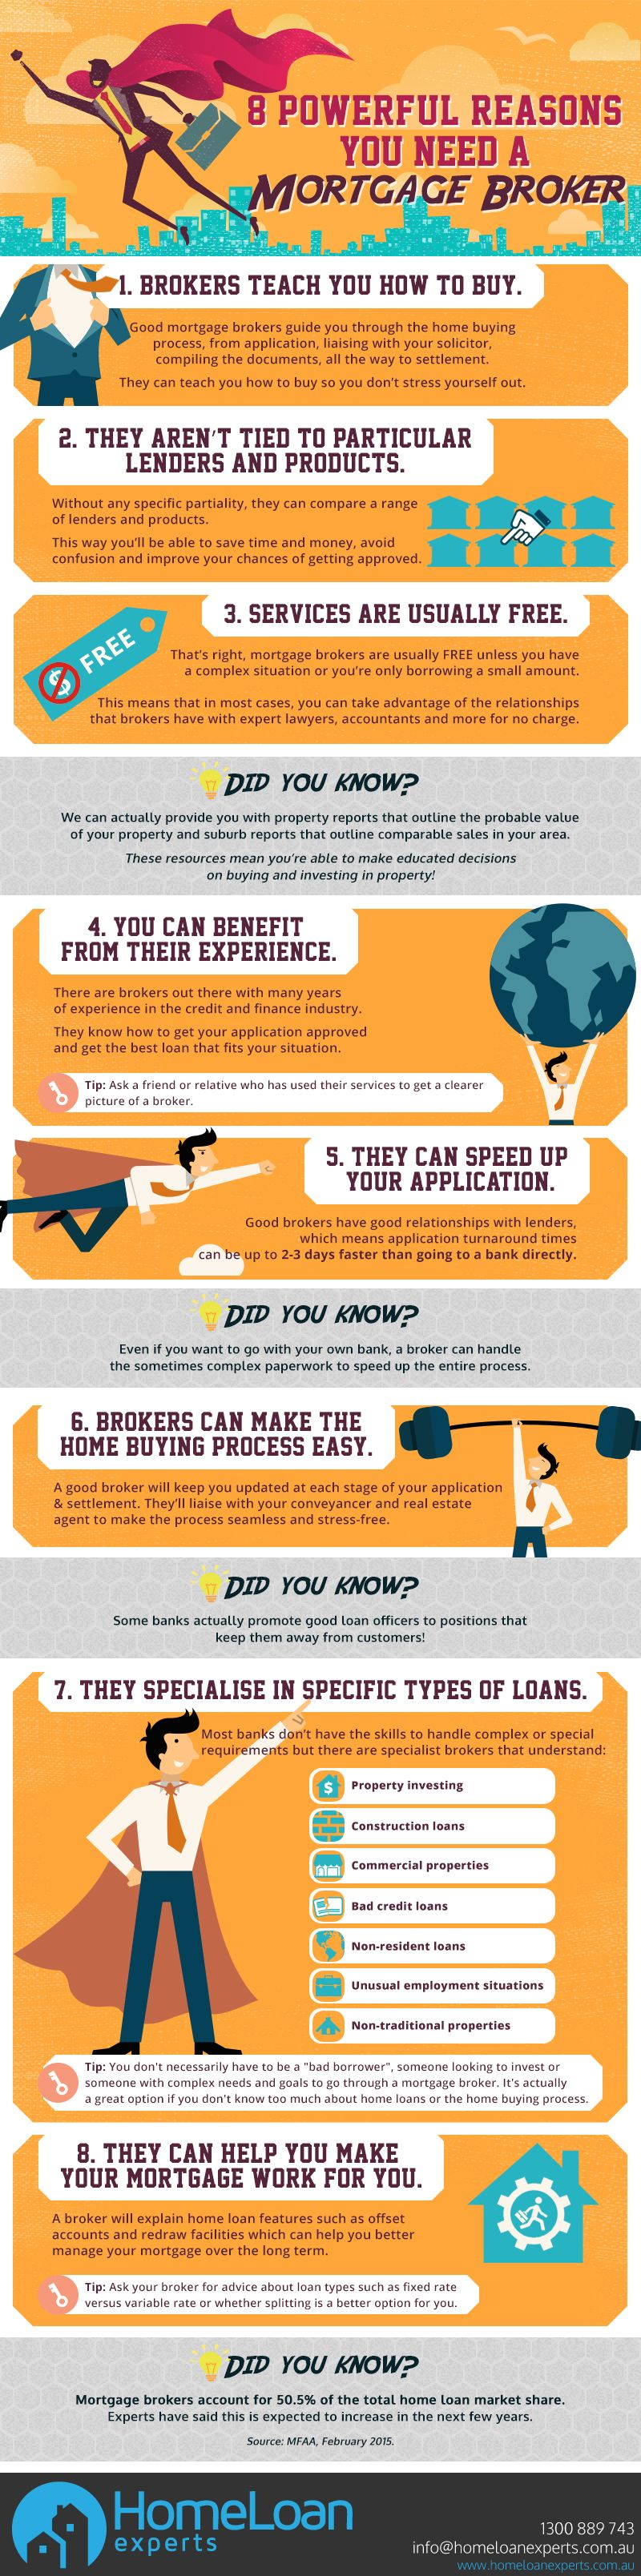 If you are taking out a home loan or will be doing so in the future then you may want to have a look at this #infographic. #mortgagebroker #home #property #homeloan #Australia #tips